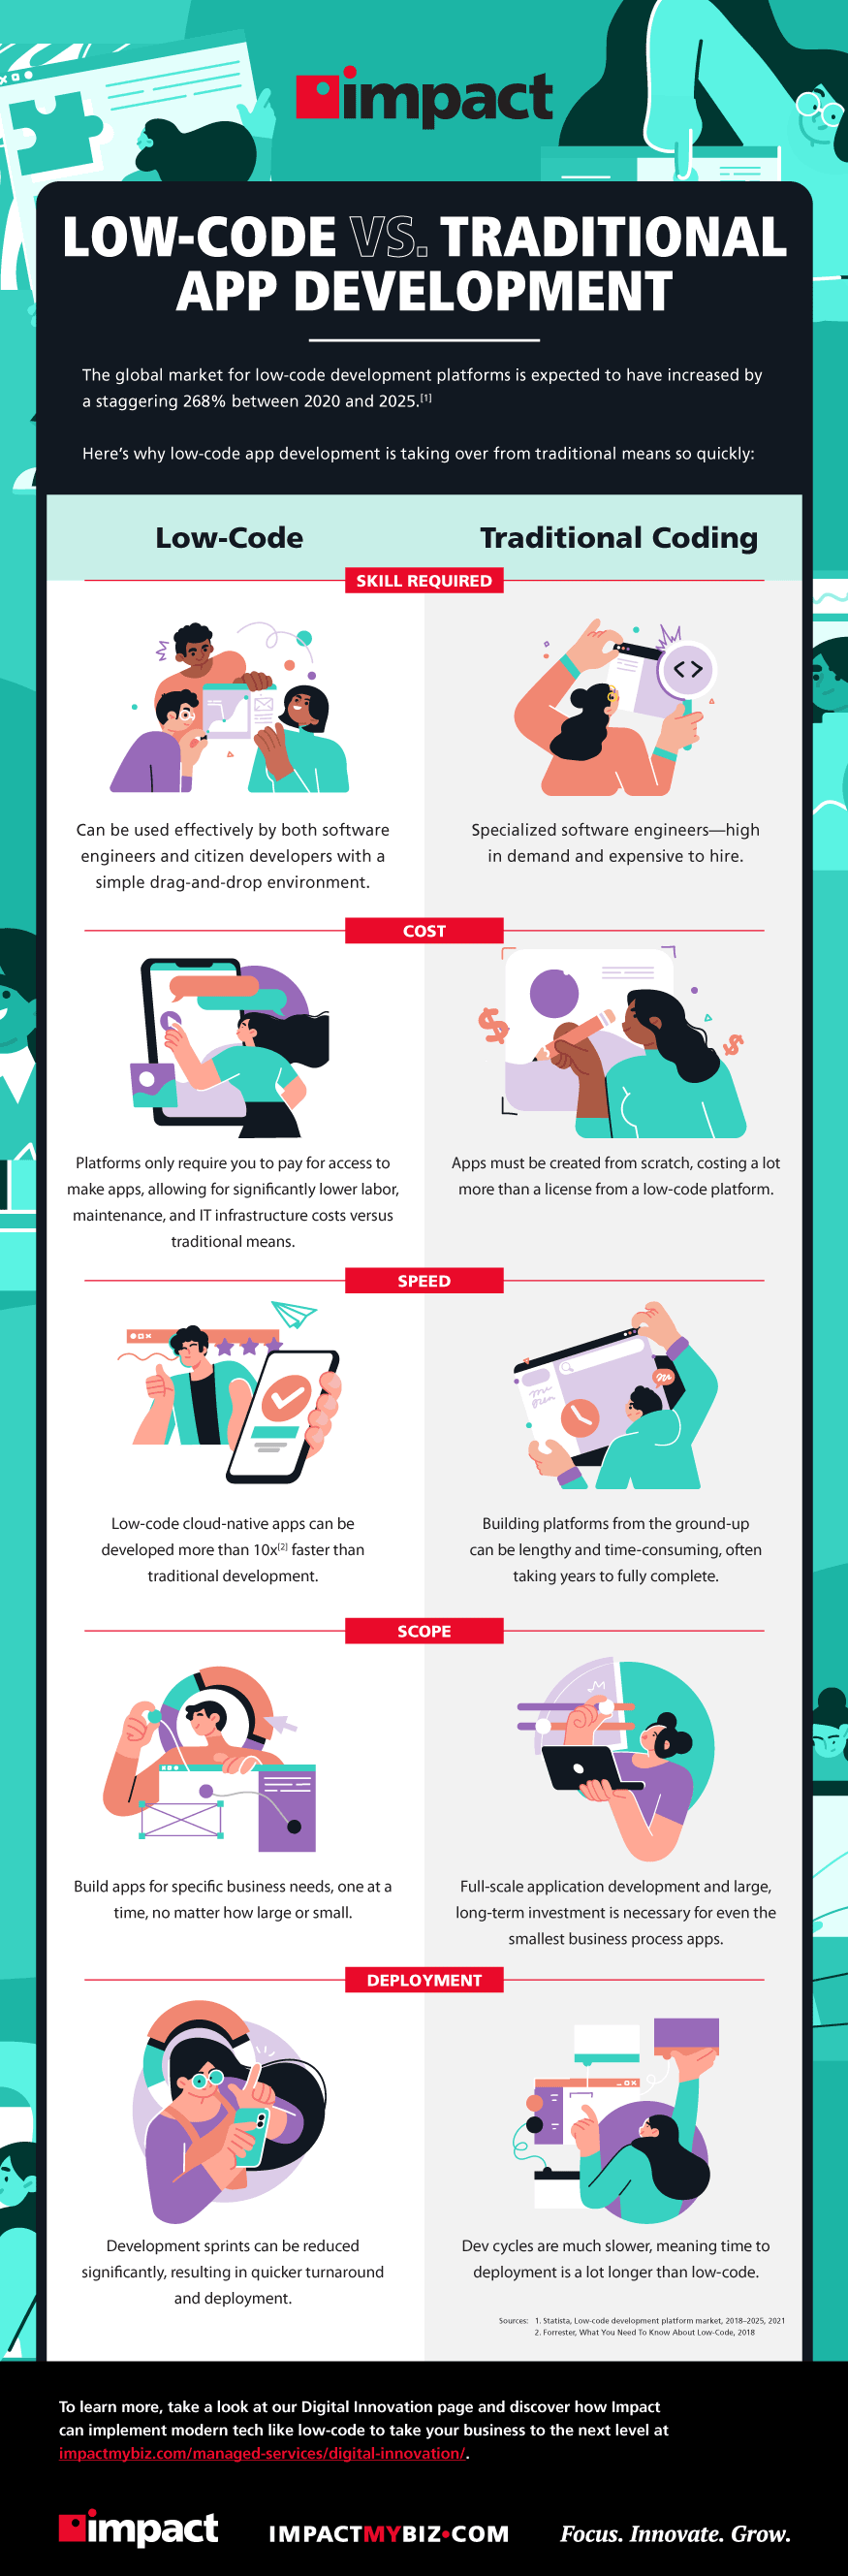 Vector image of woman looking at computer screen panels, abstract   Infographic: Low-Code vs. Traditional Development